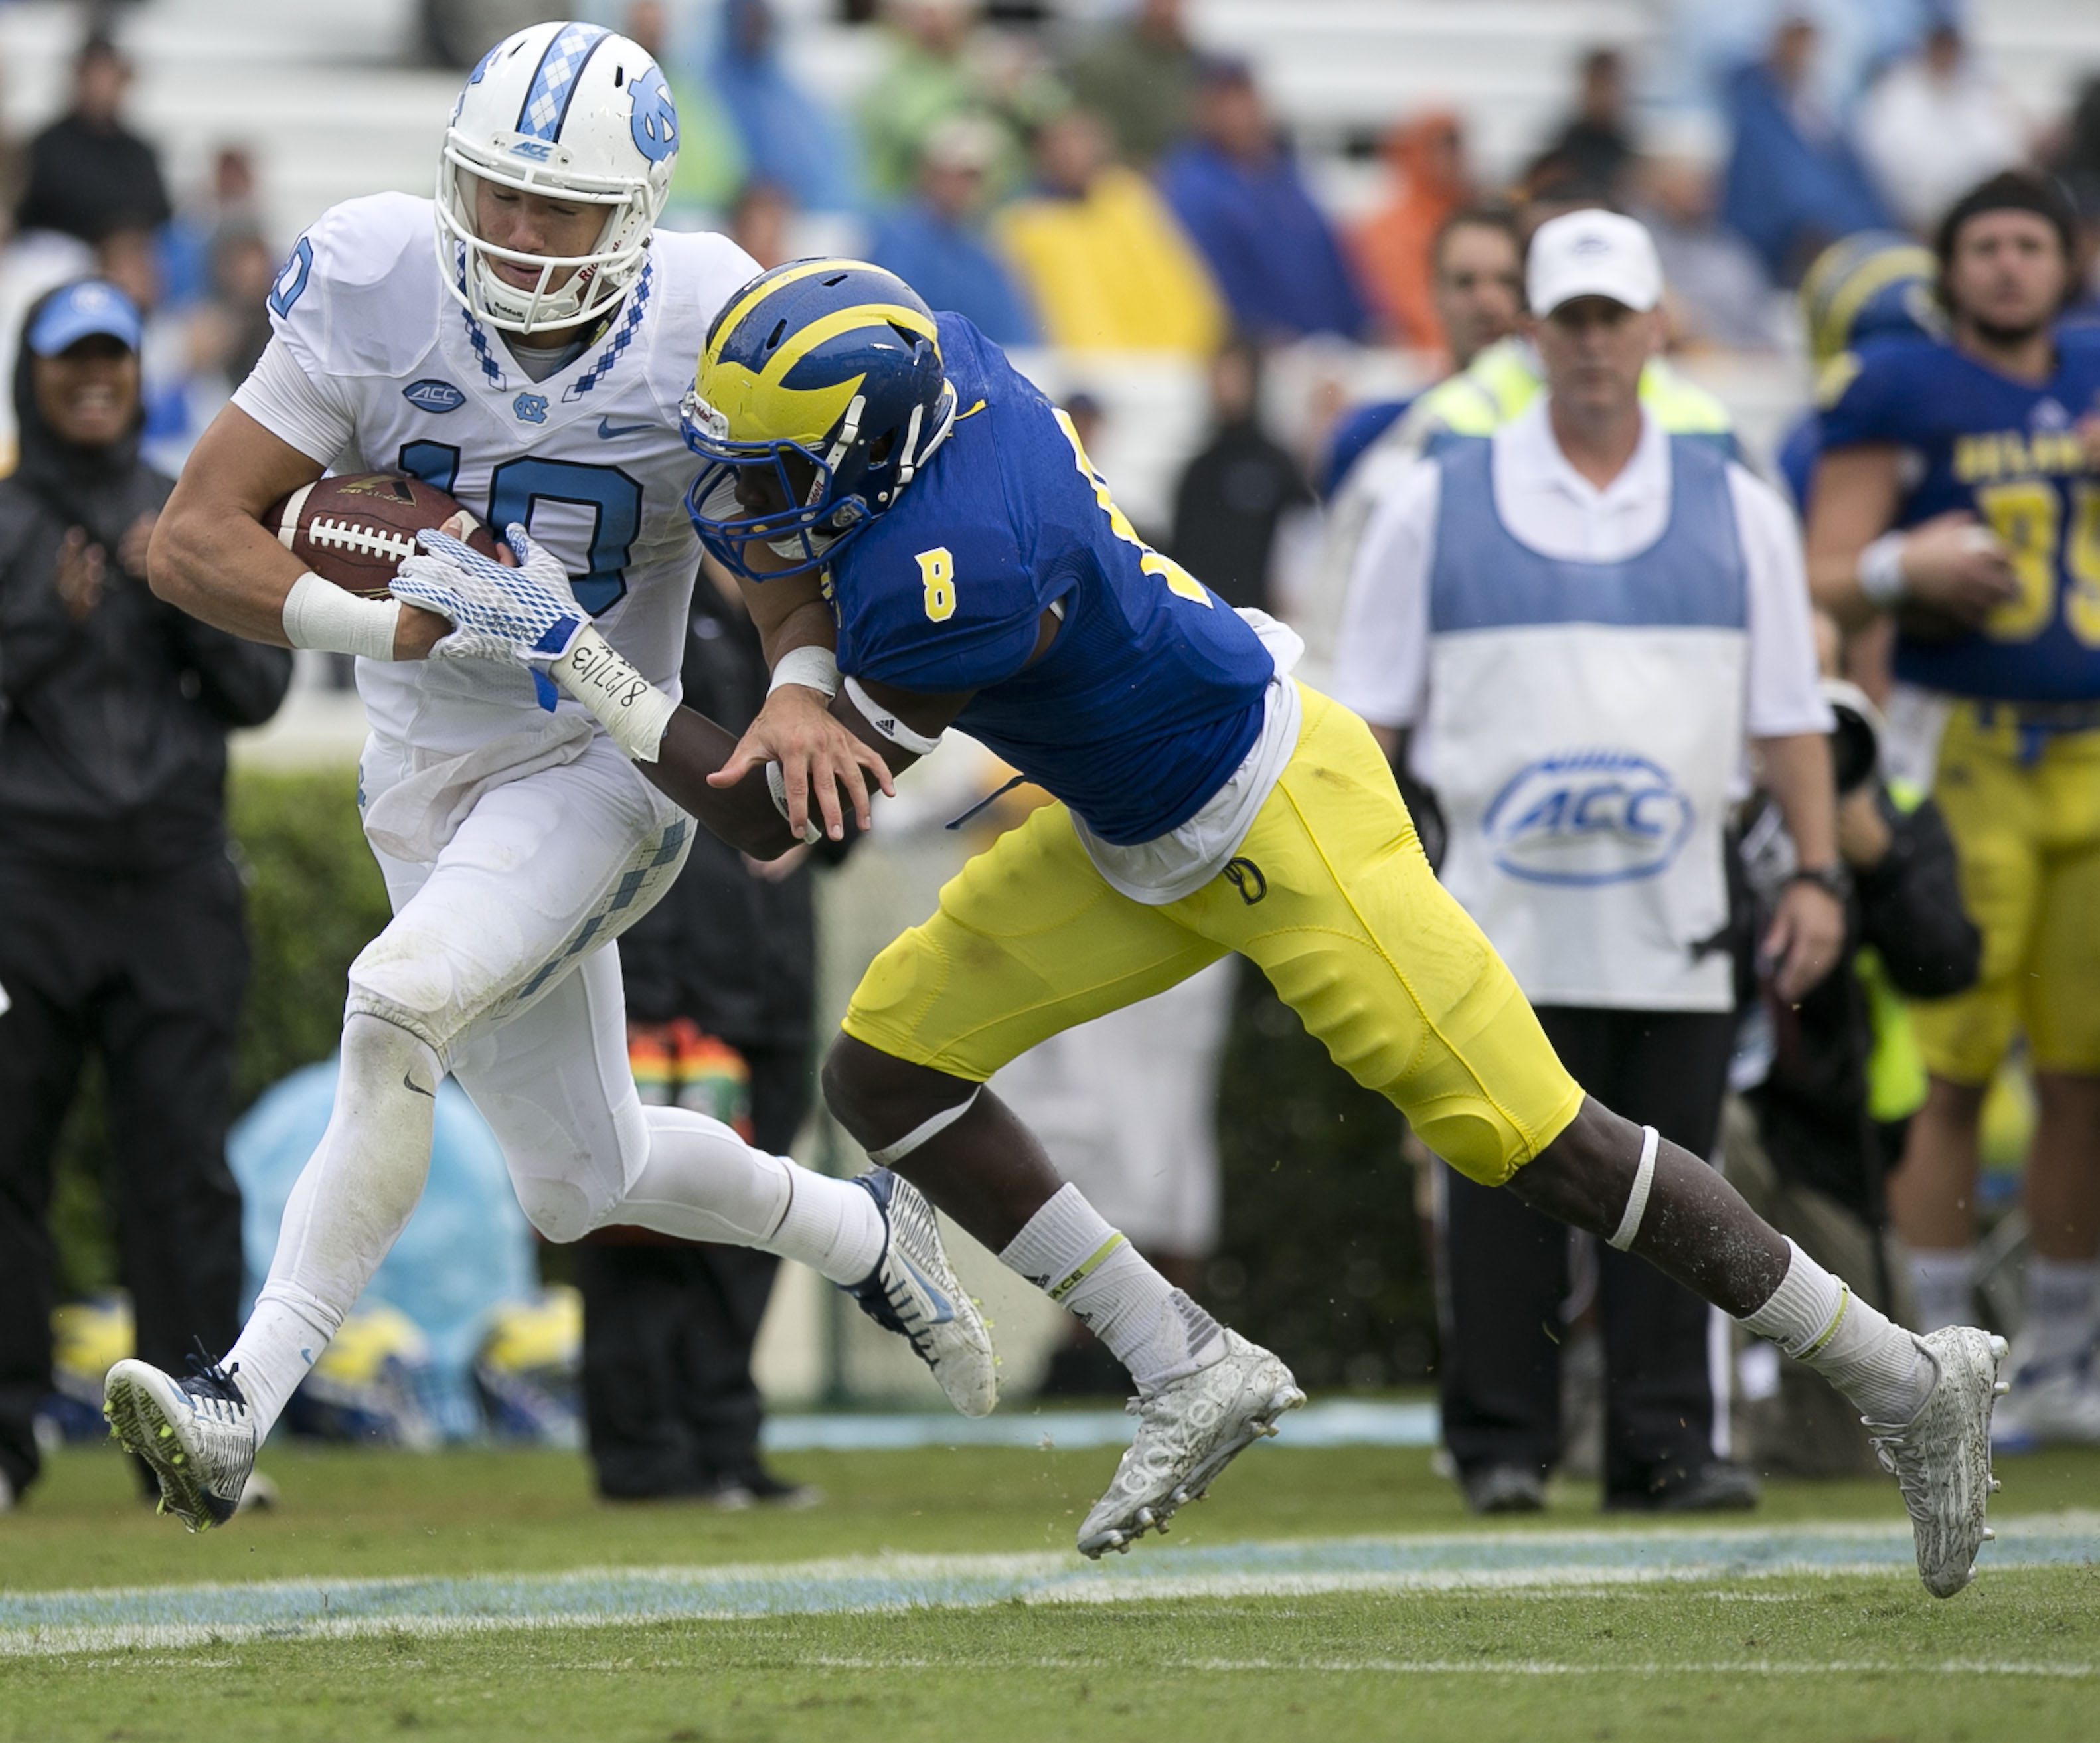 FILE - In this Sept. 26, 2015 file photo, North Carolina quarterback Mitch Trubisky (10) picks up yardage before being stopped by Delawares Tenny Adewusi (8) in the fourth quarter of an NCAA college football game in Chapel Hill, N.C. Mitch Trubisky has wa